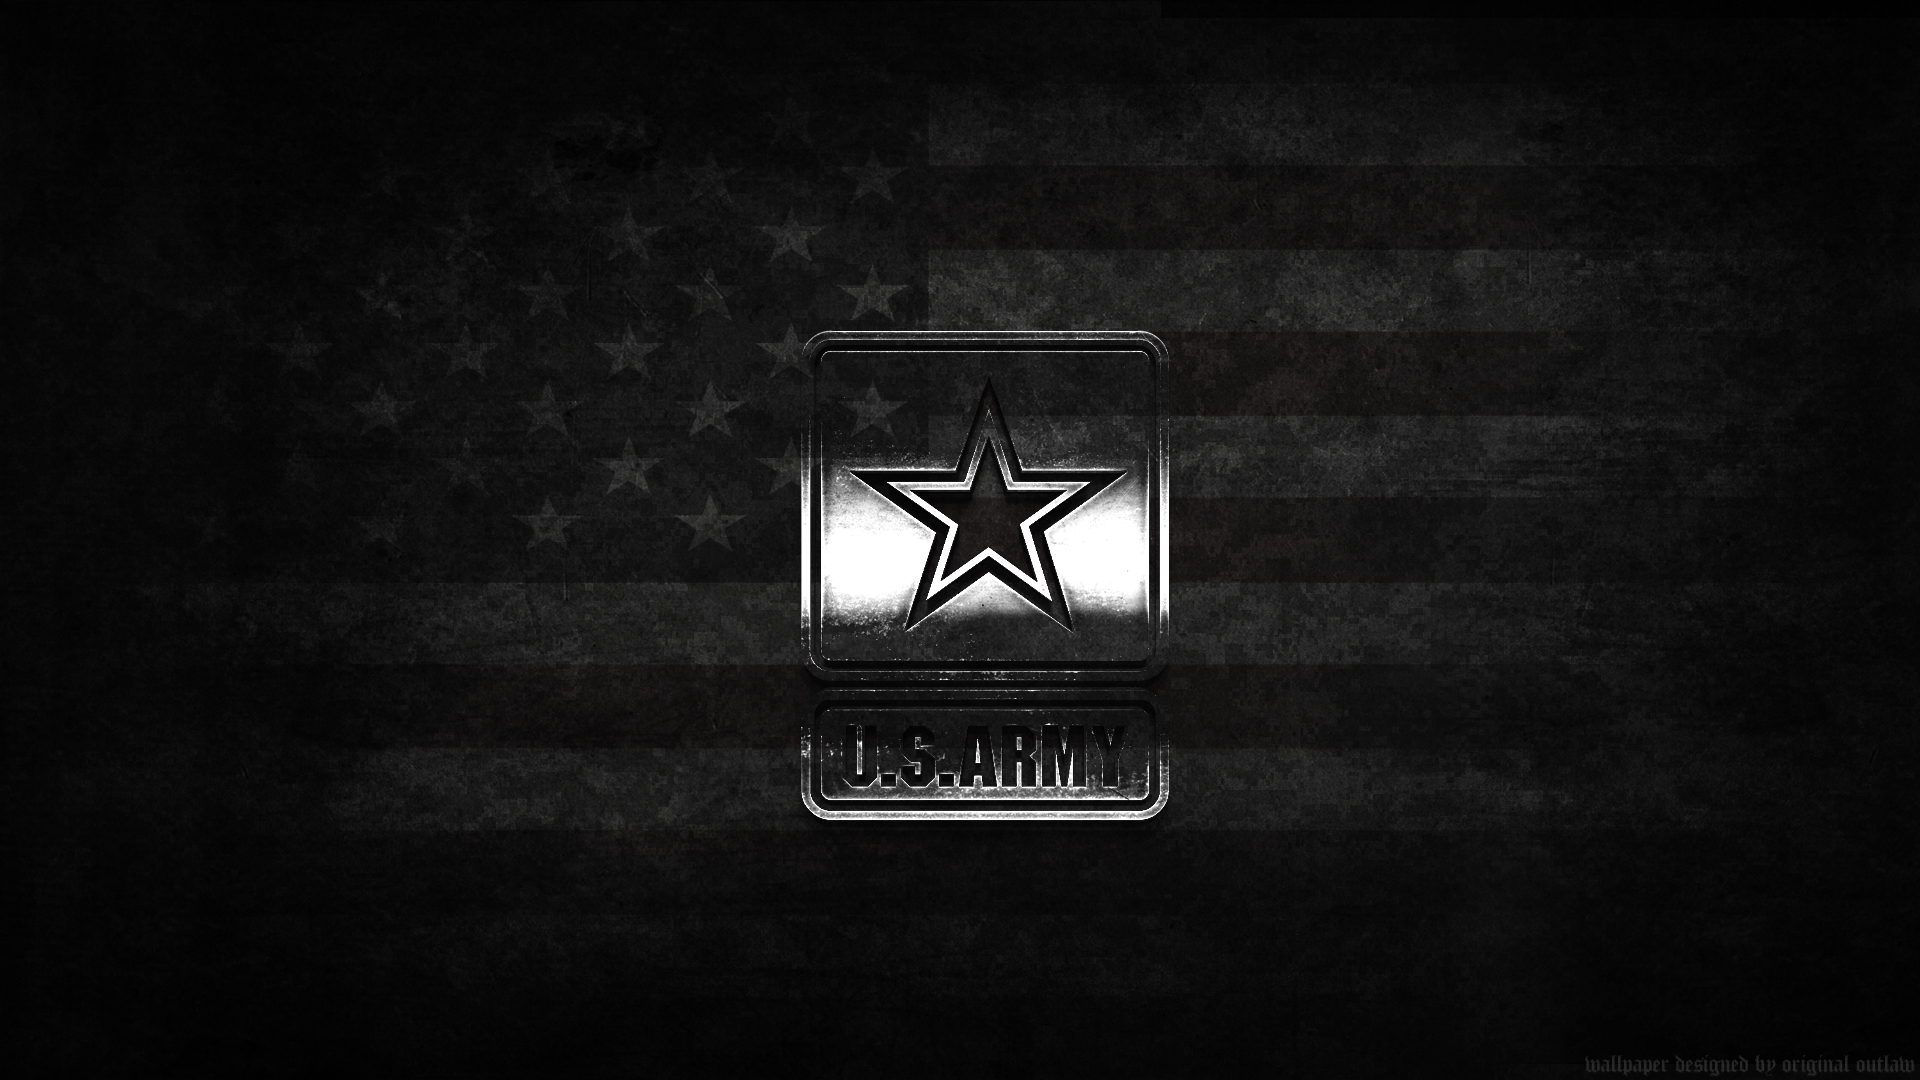 Us Army Backgrounds submited images 1920x1080